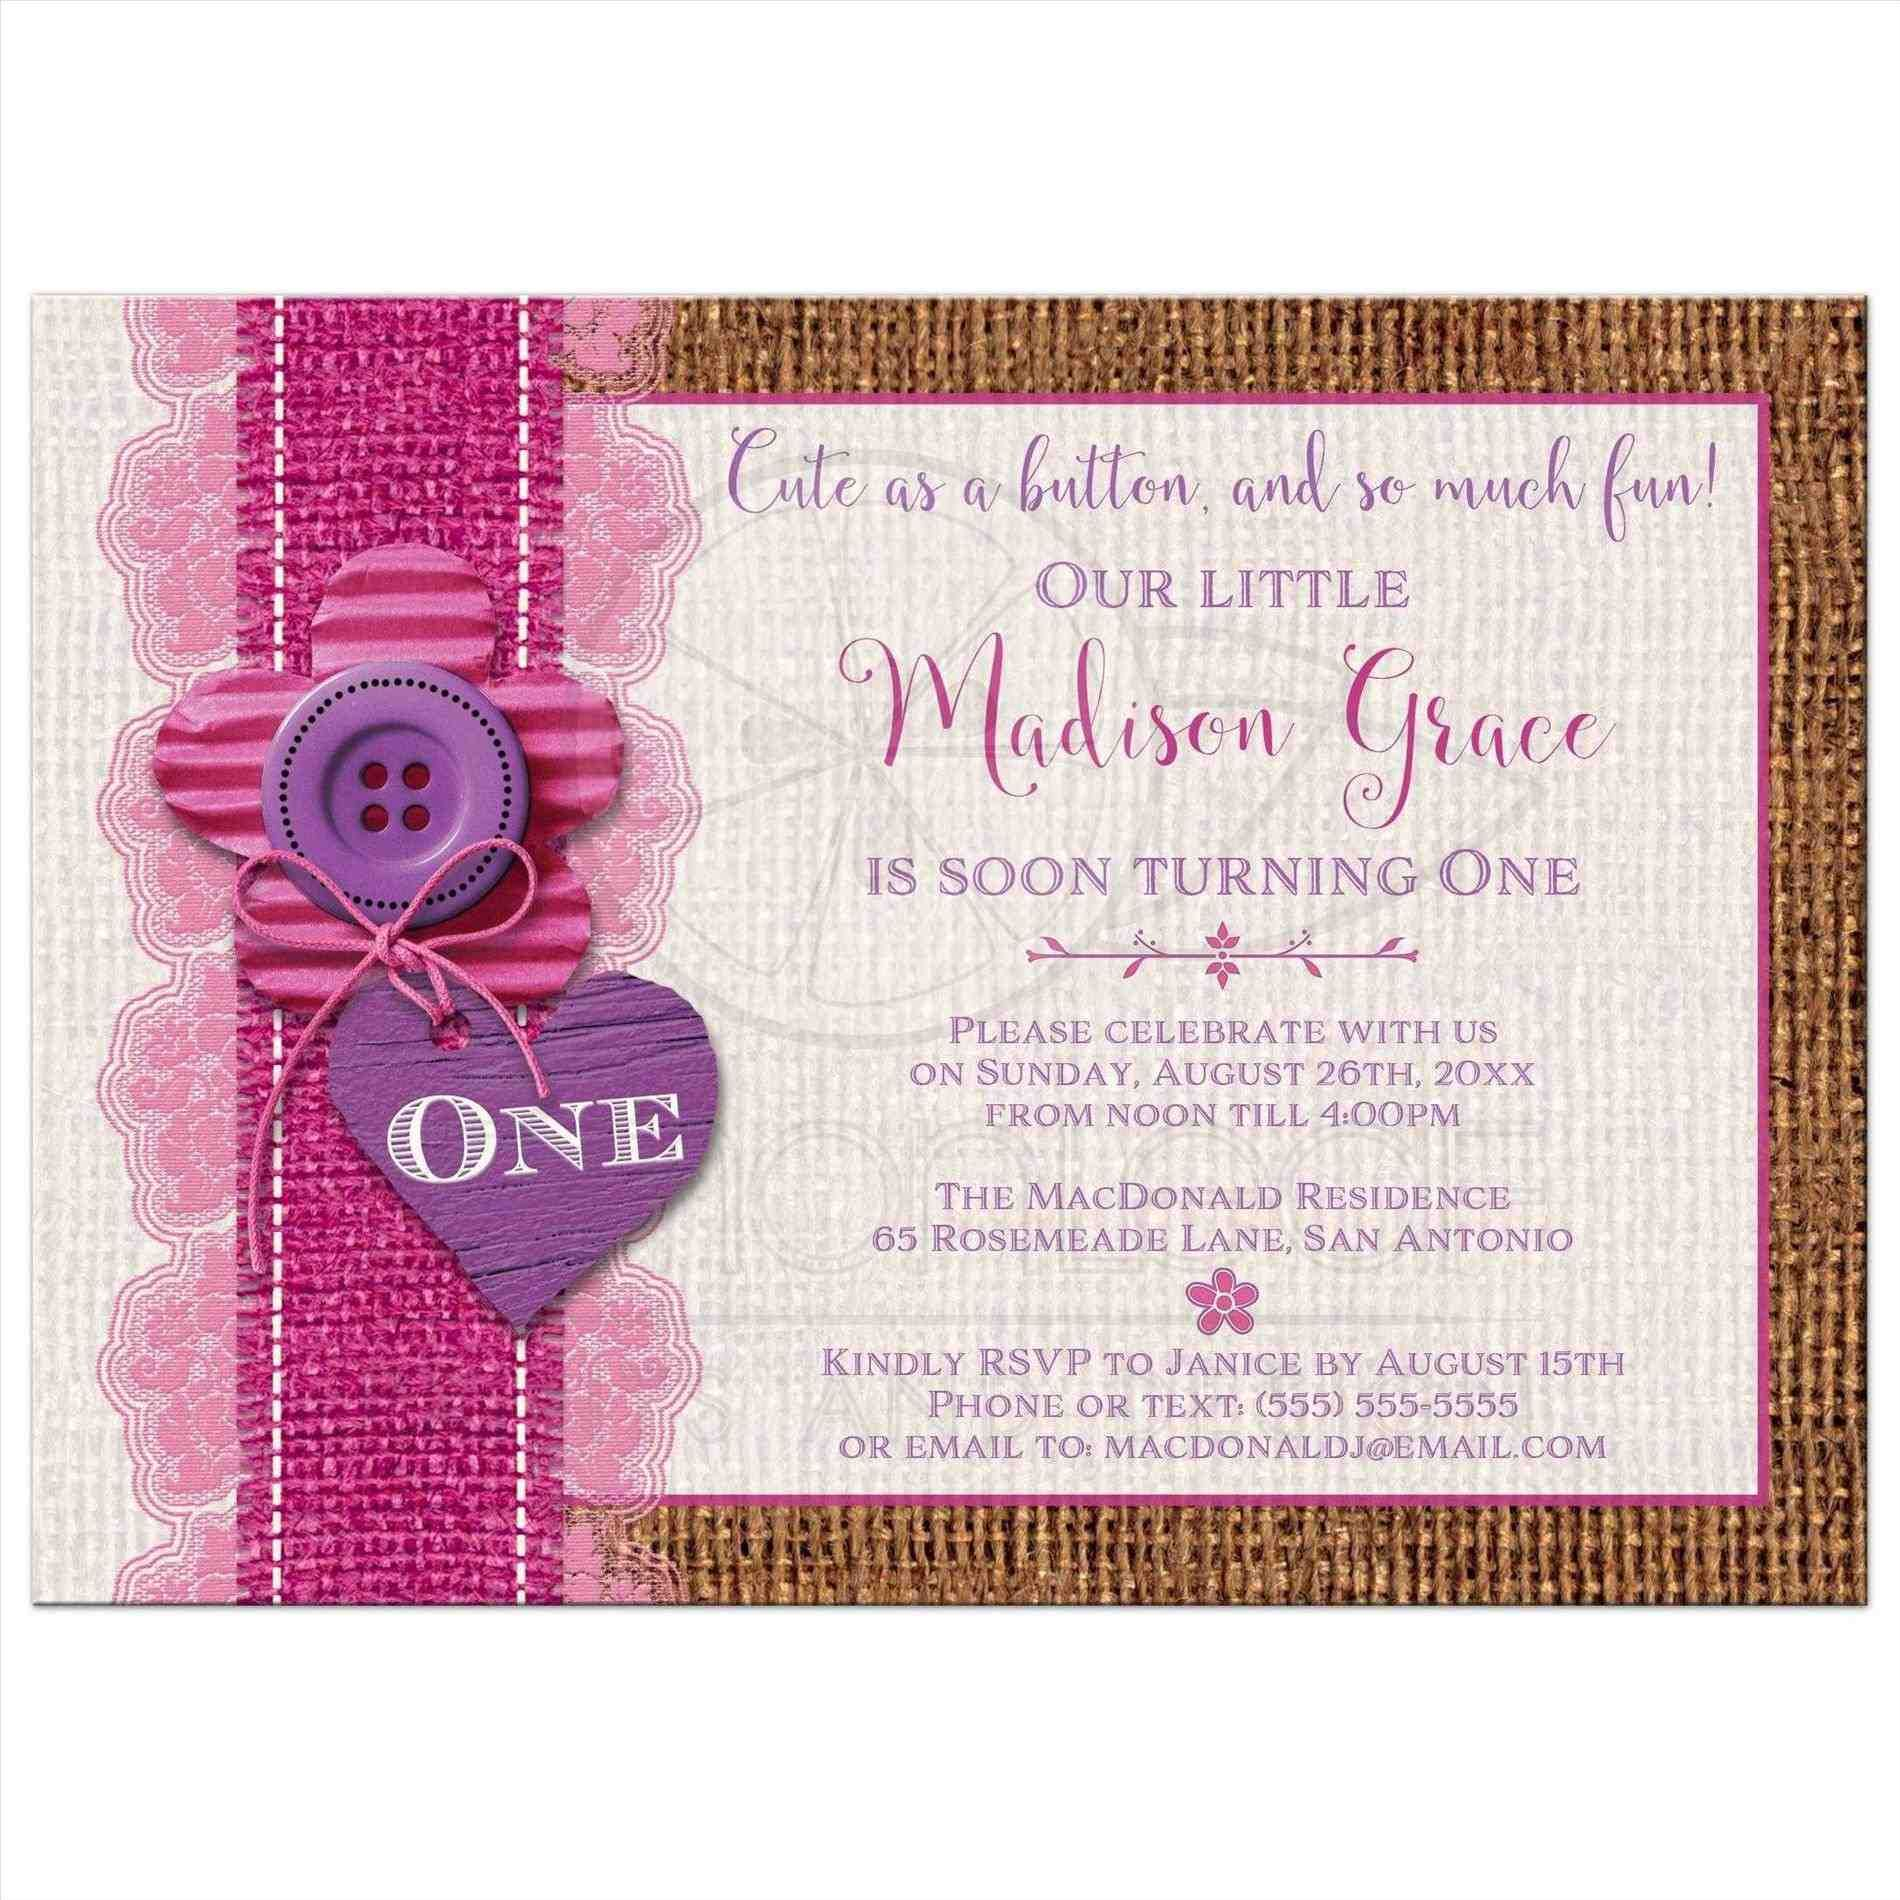 unique birthday invitations and get ideas to create the birthday ...